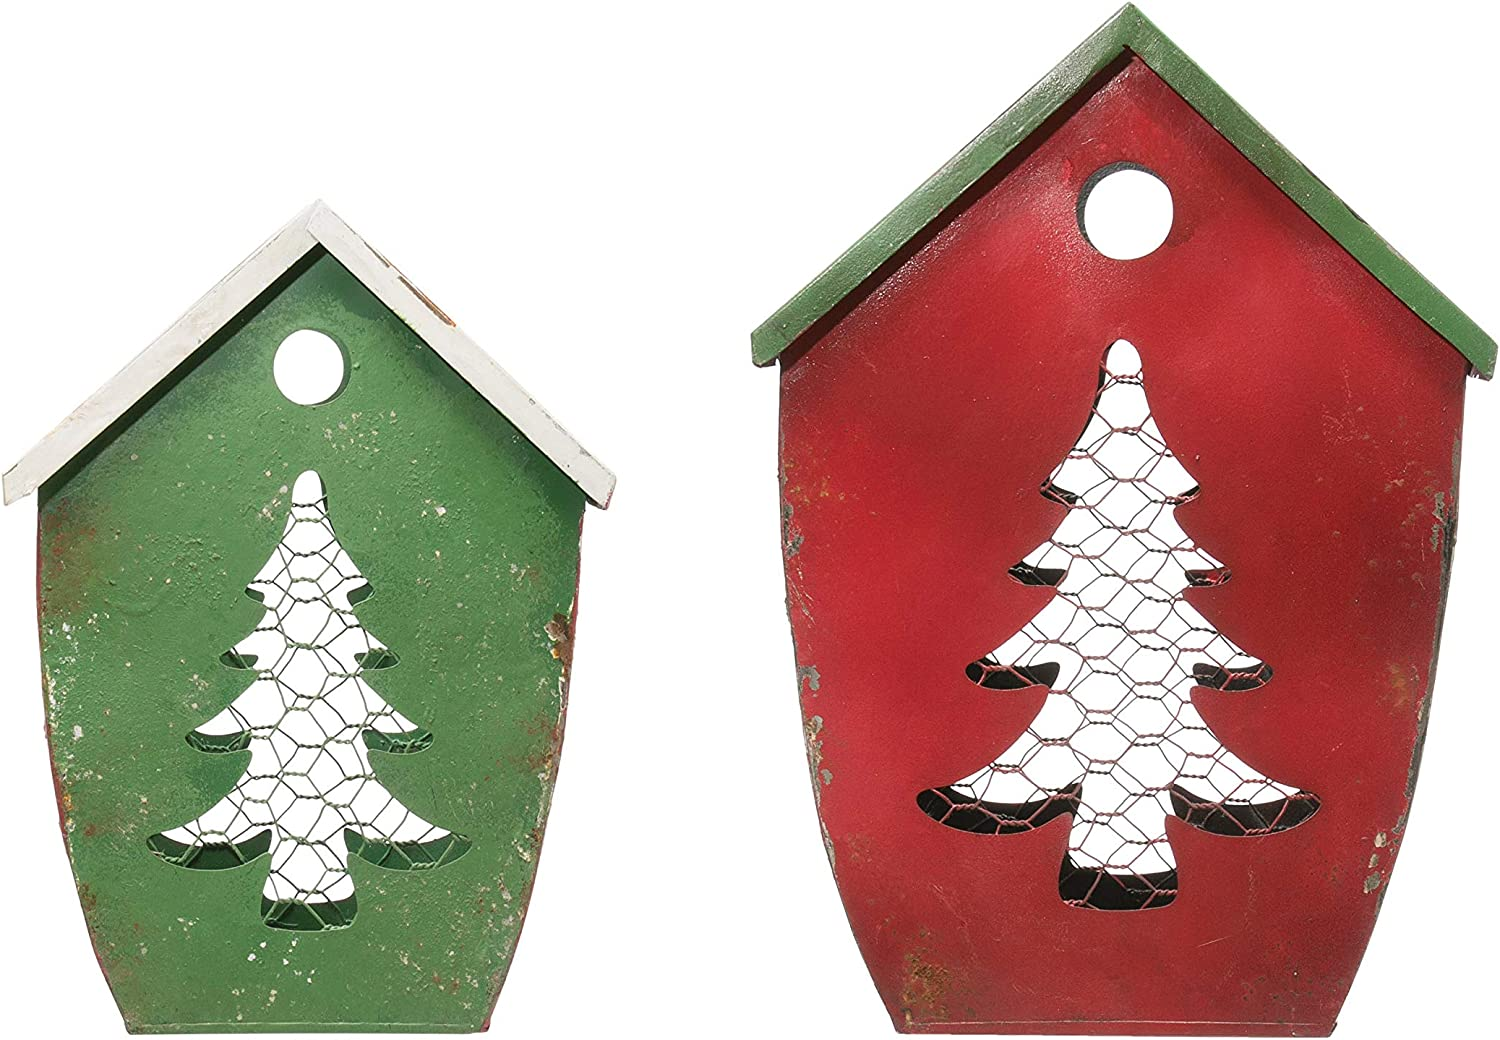 Creative Co-op Metal House Shaped Cut-Out Tree (Set of 2 Sizes) Containers, Red & Green